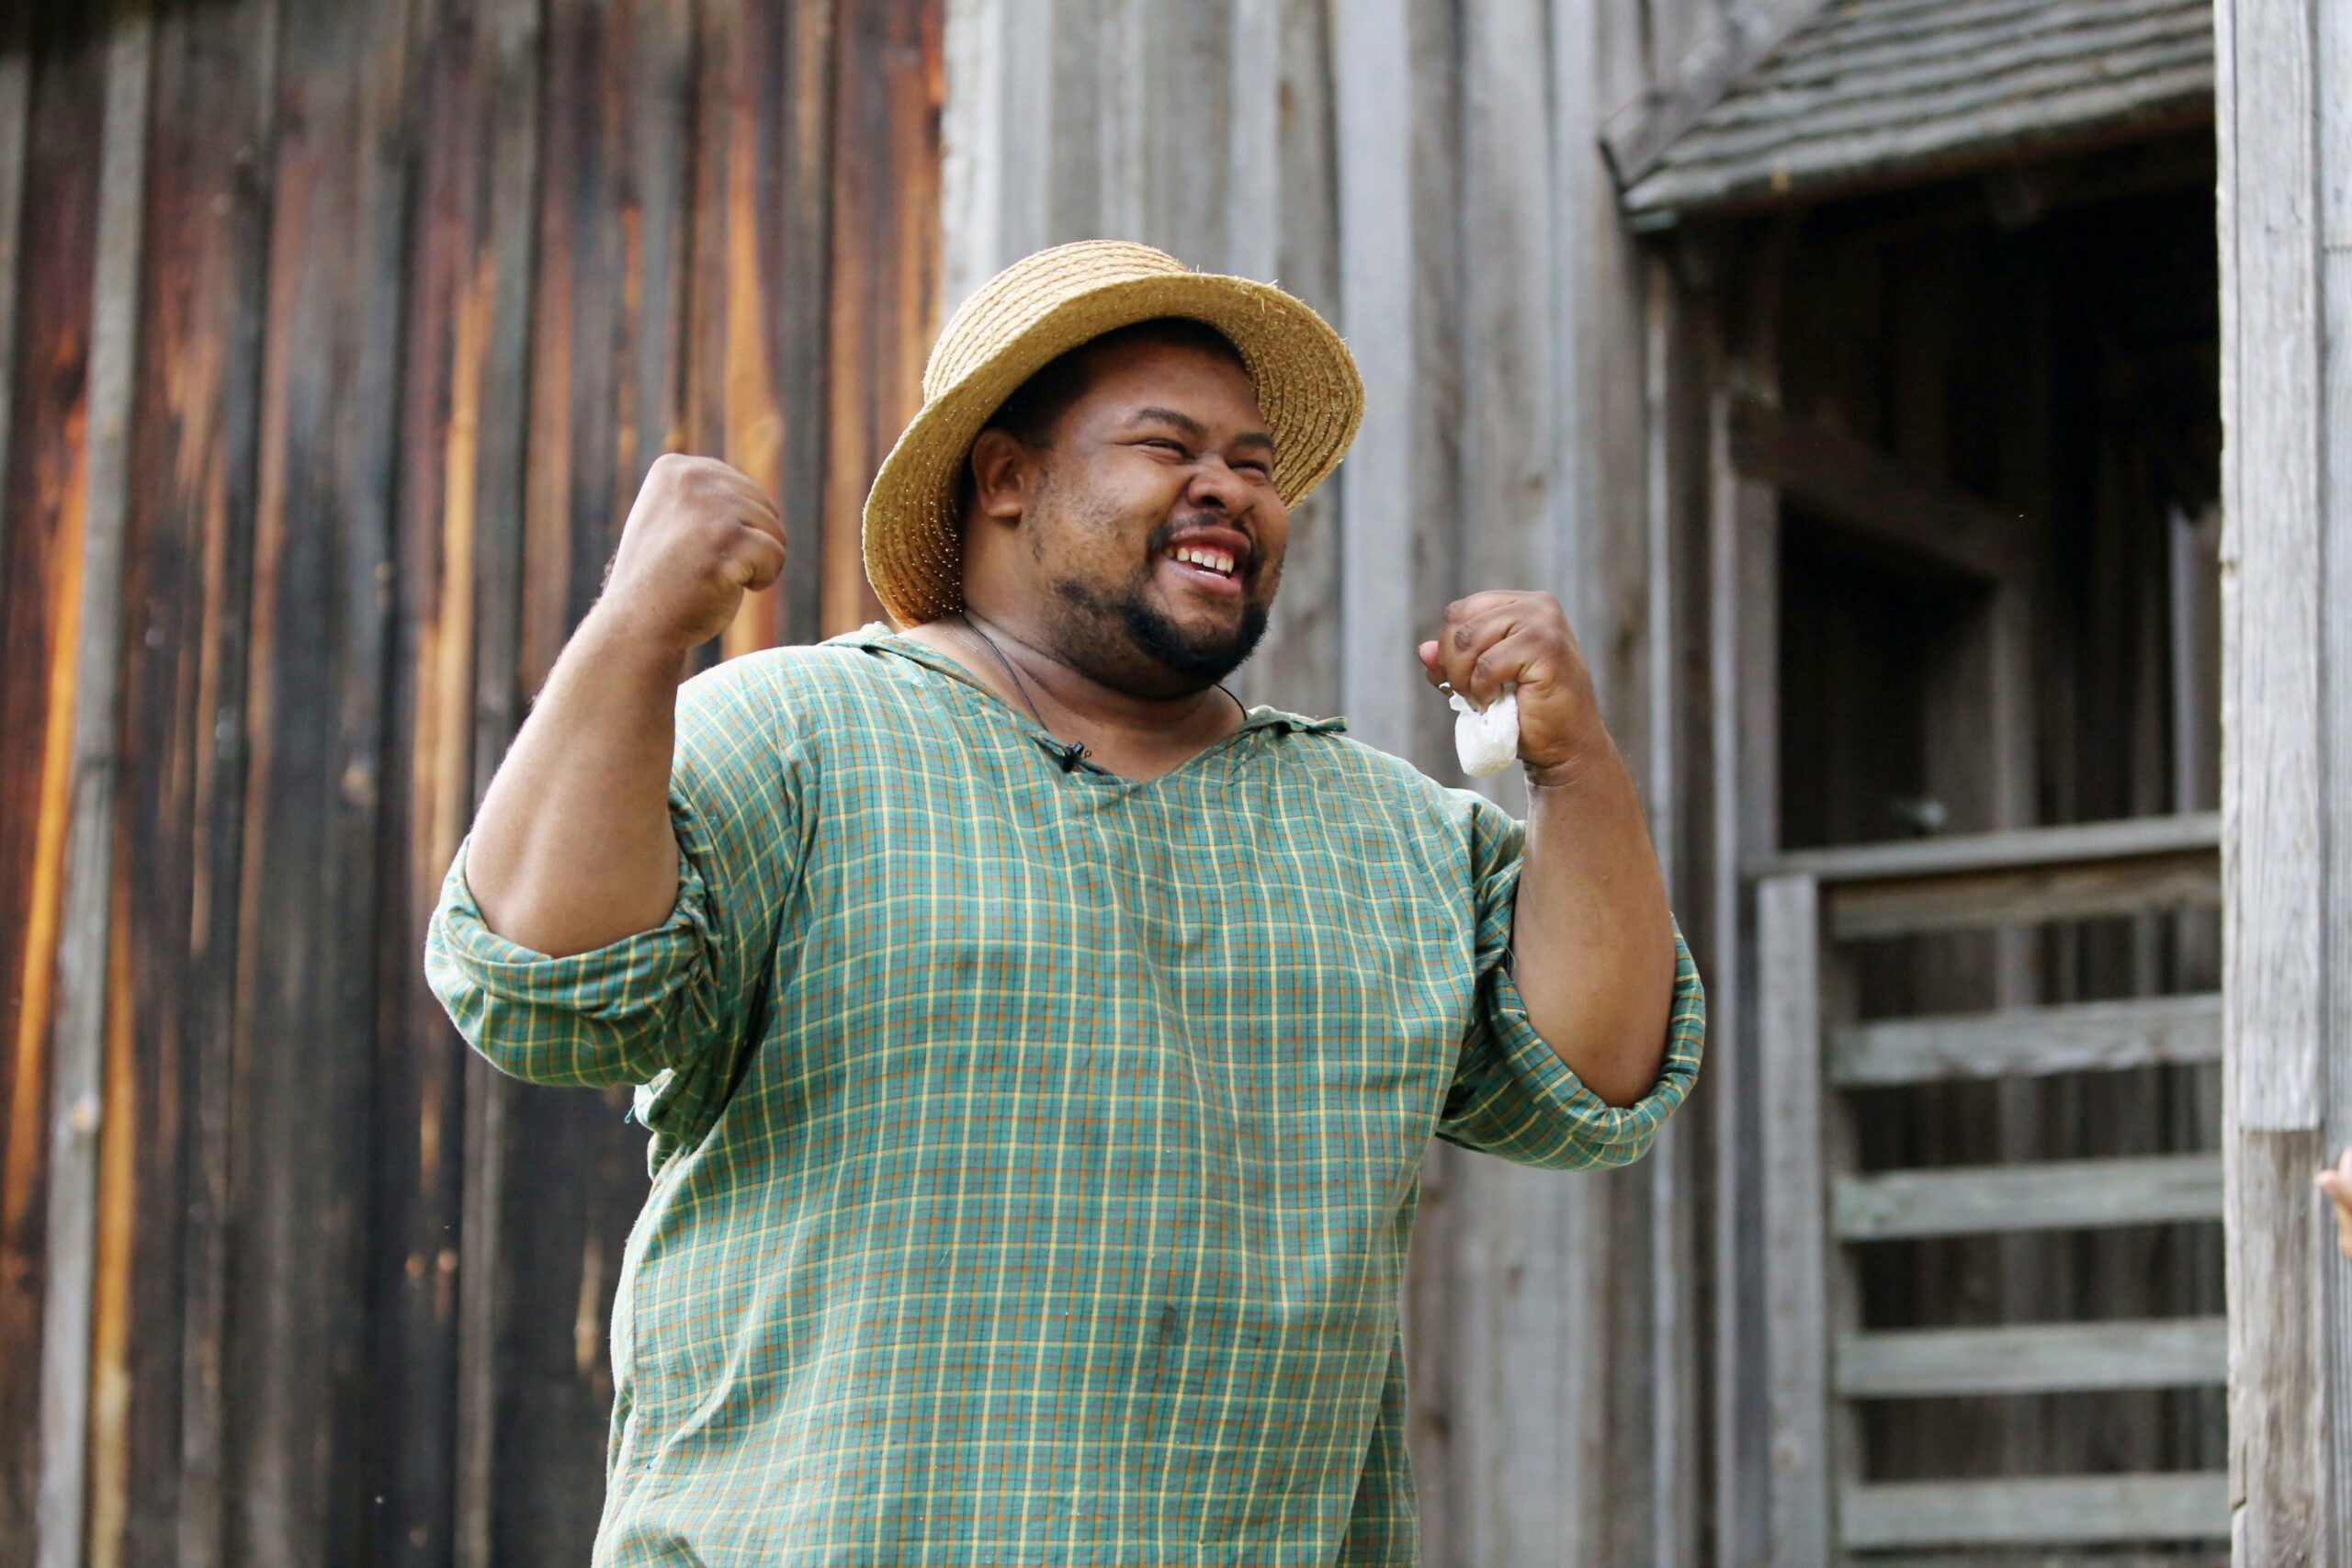 Michael Twitty cooking event